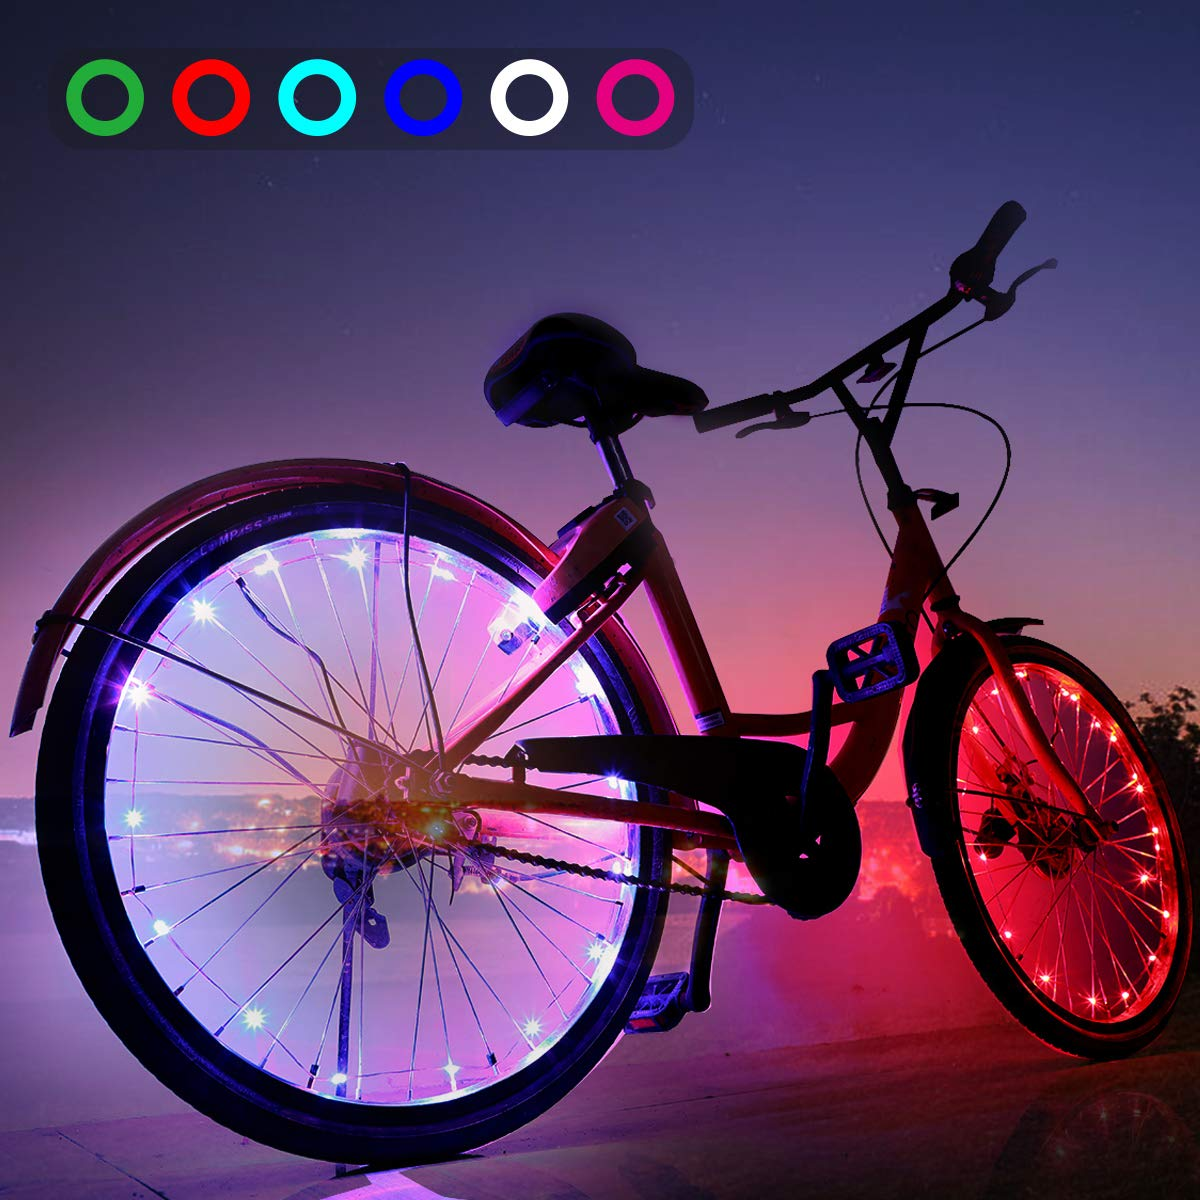 AOYOO Bicycle Wheel Light Night Light (1 Tire Pack) Waterproof 7 Color Outdoor Lighting Bicycle Tire Accessories You Can Choose Your Favorite Color 18 Flash Pattern Personality Selection, Safety Spoke by AOYOO (Image #1)